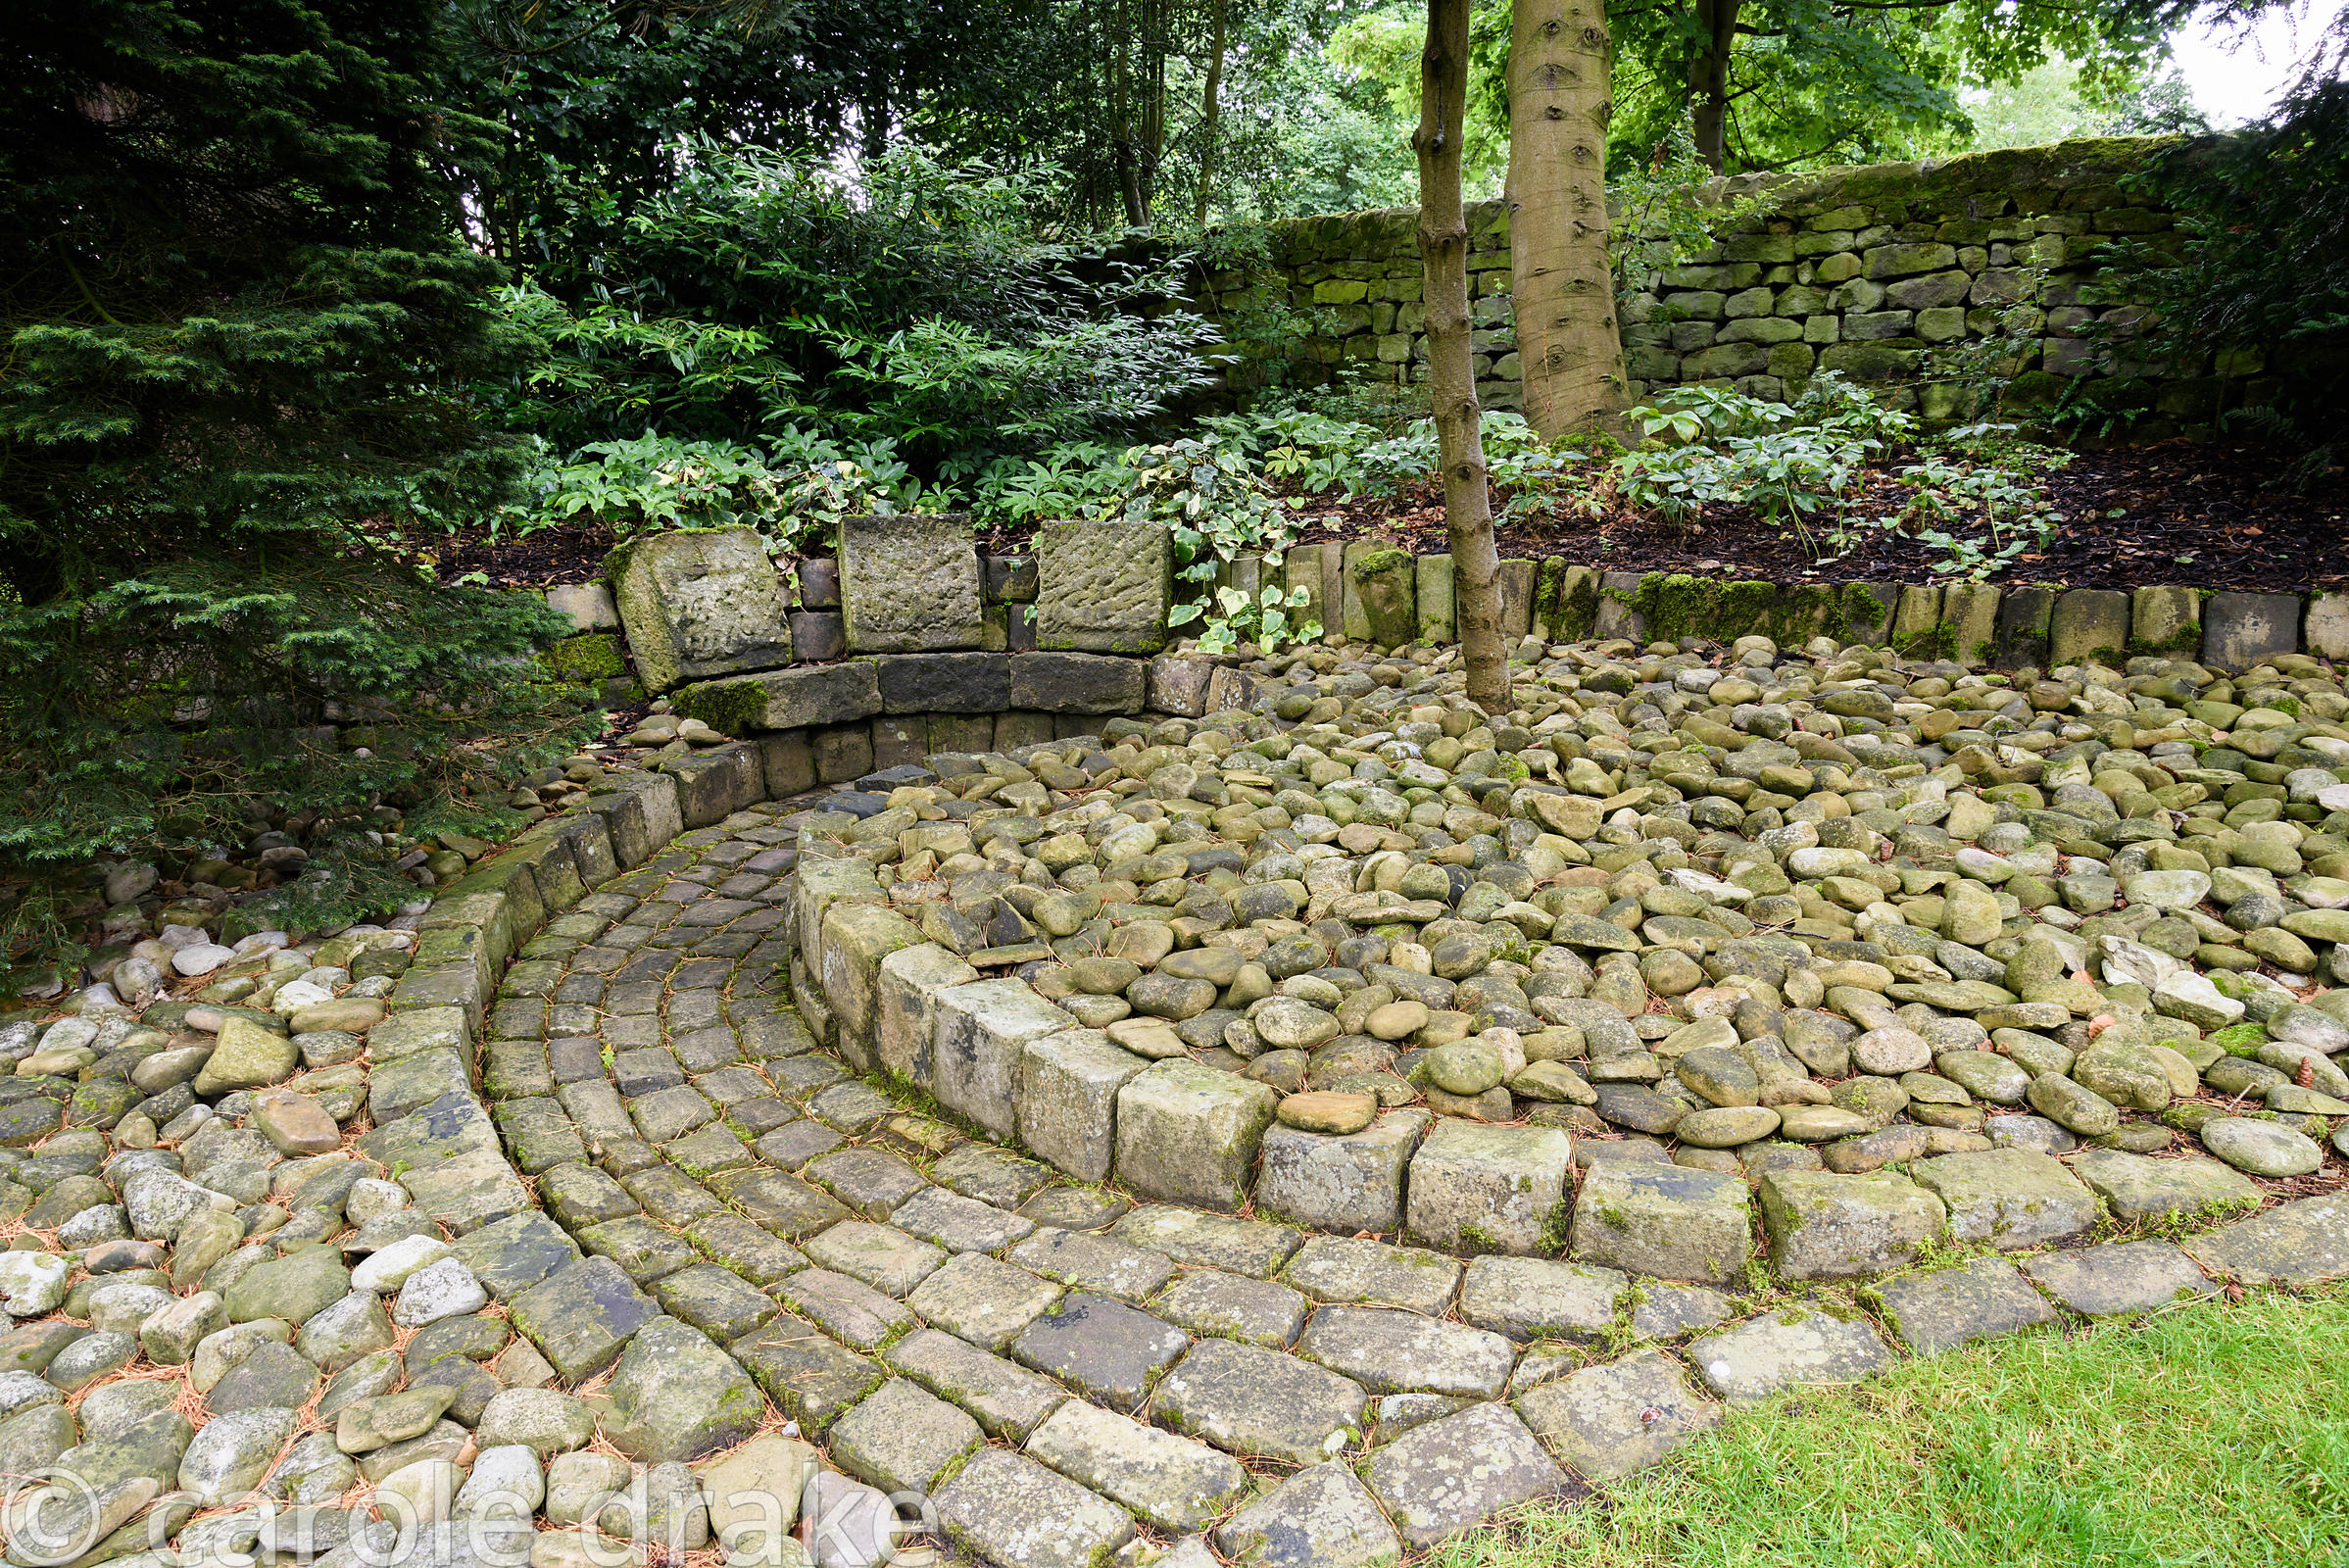 Sunken seating area constructed with stone slabs and framed by ground mulched with large pebbles at York Gate Garden, Adel in...